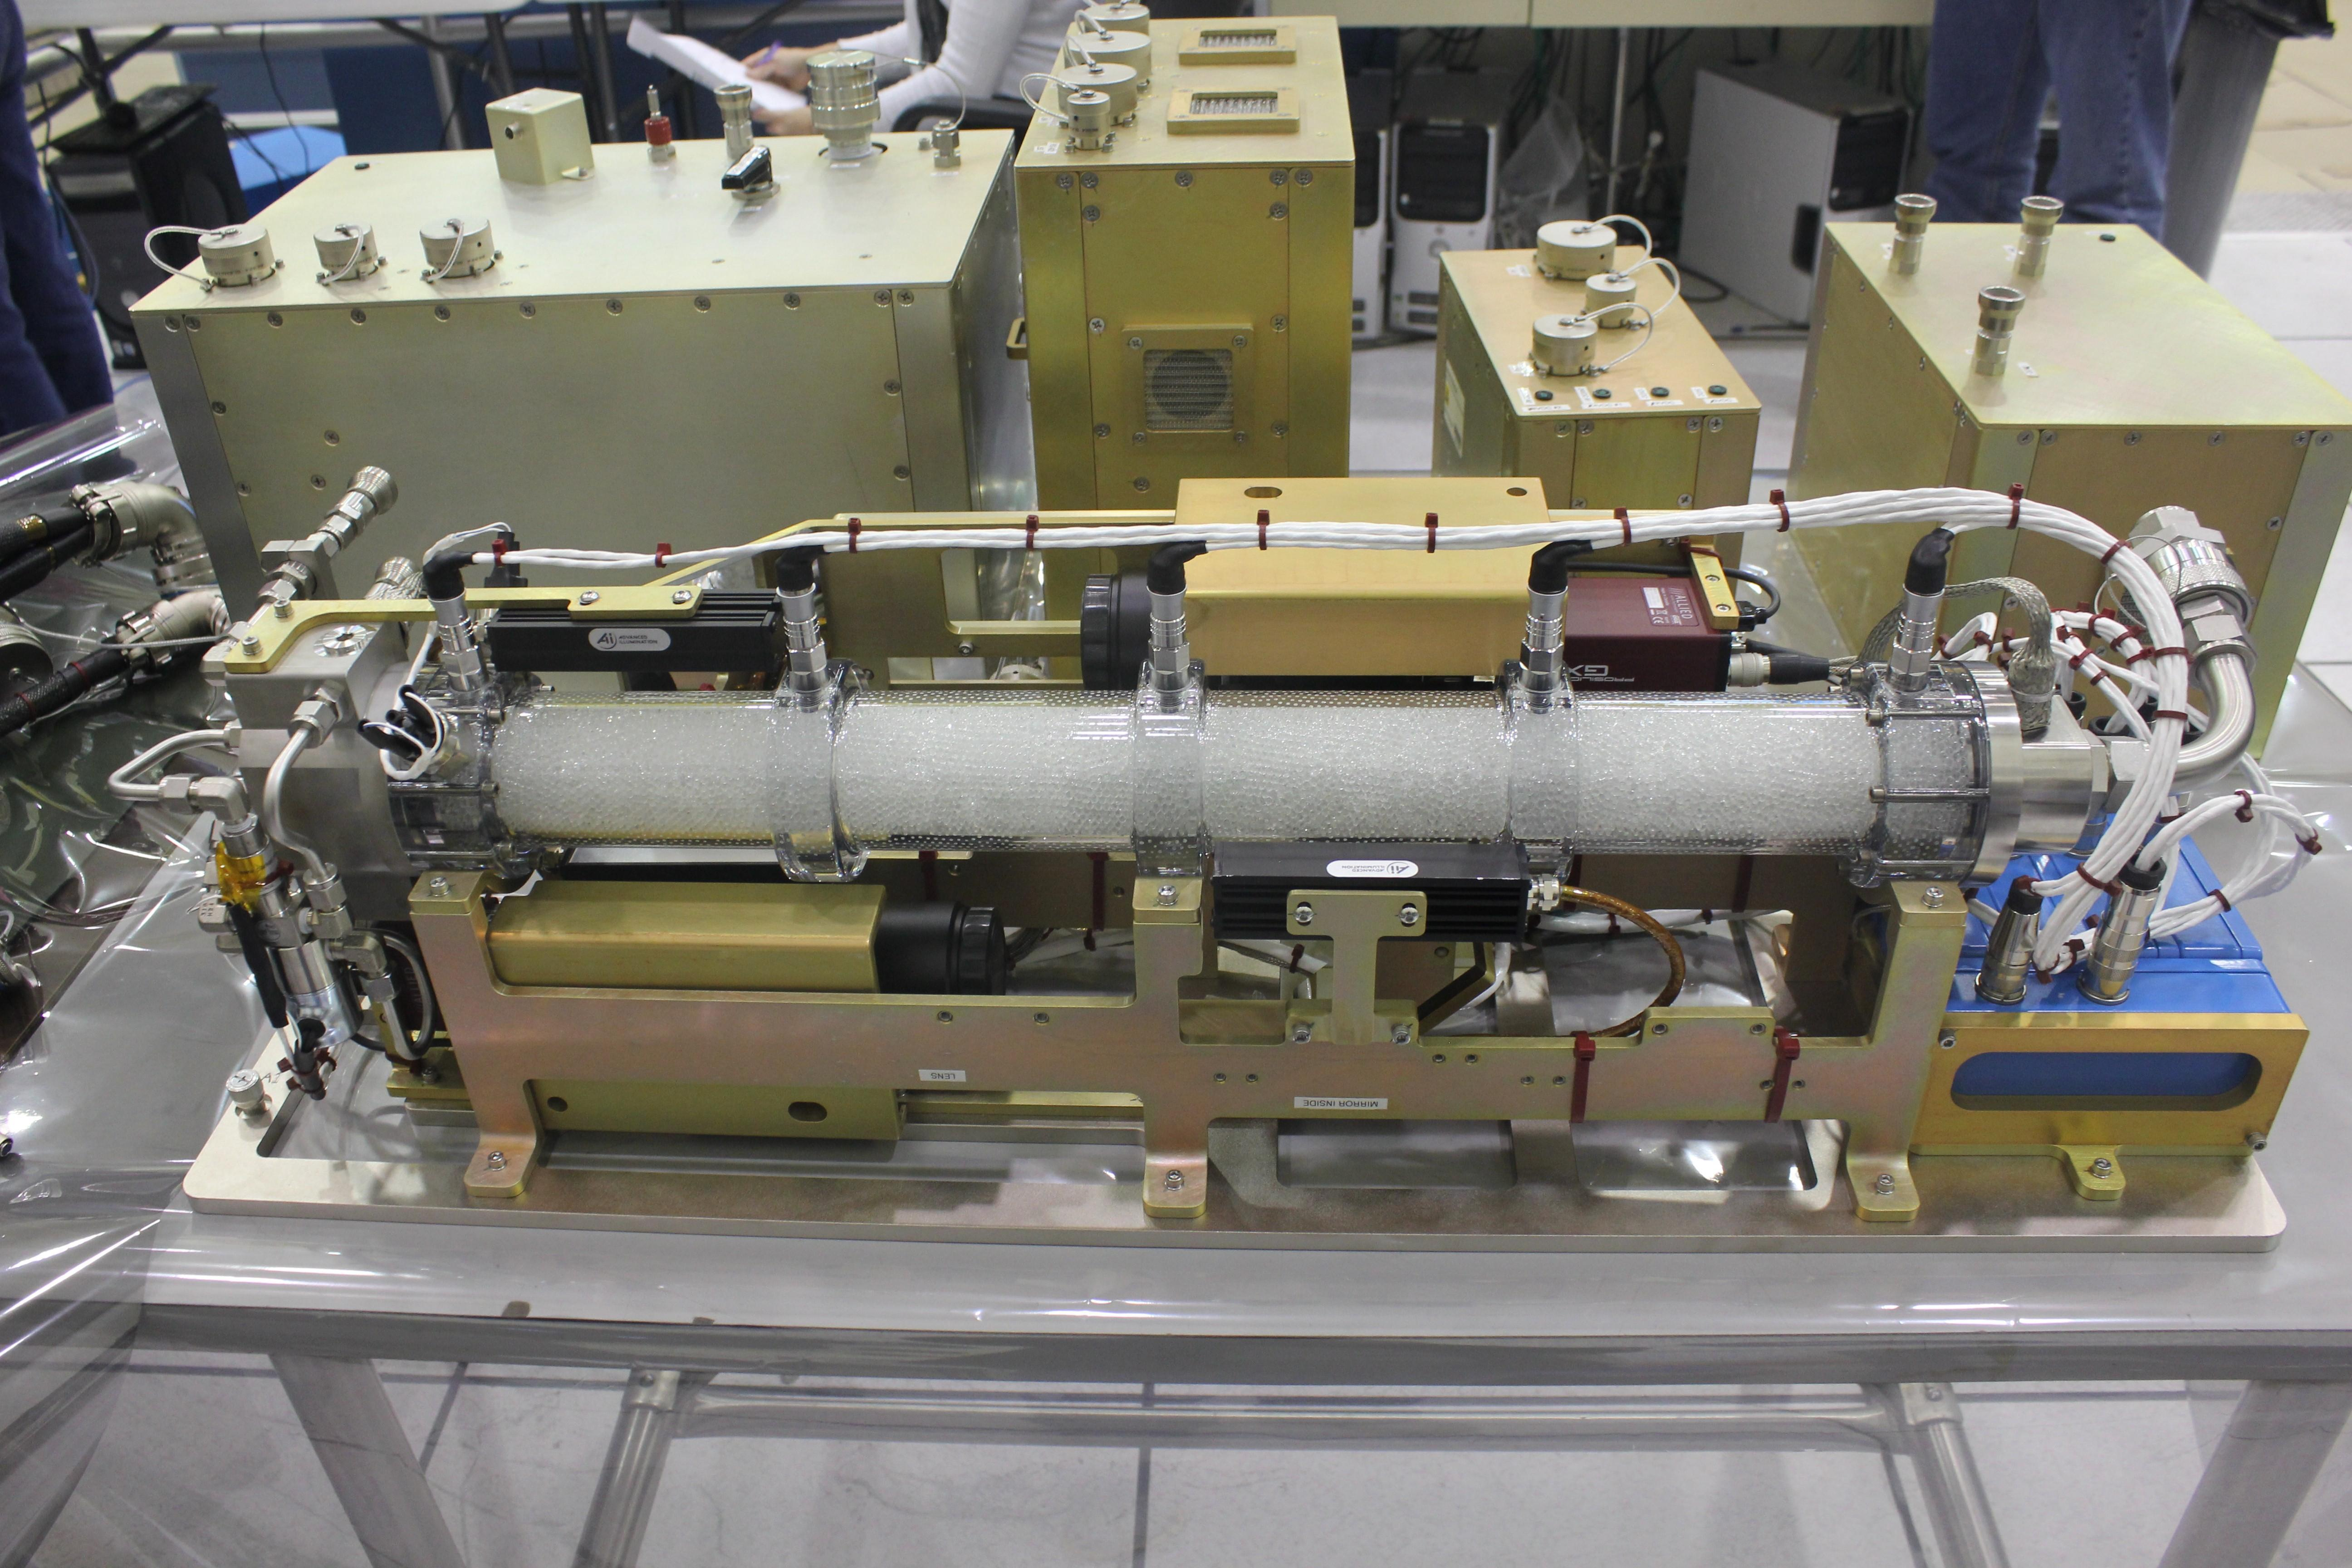 nasa packed bed reactor experiment